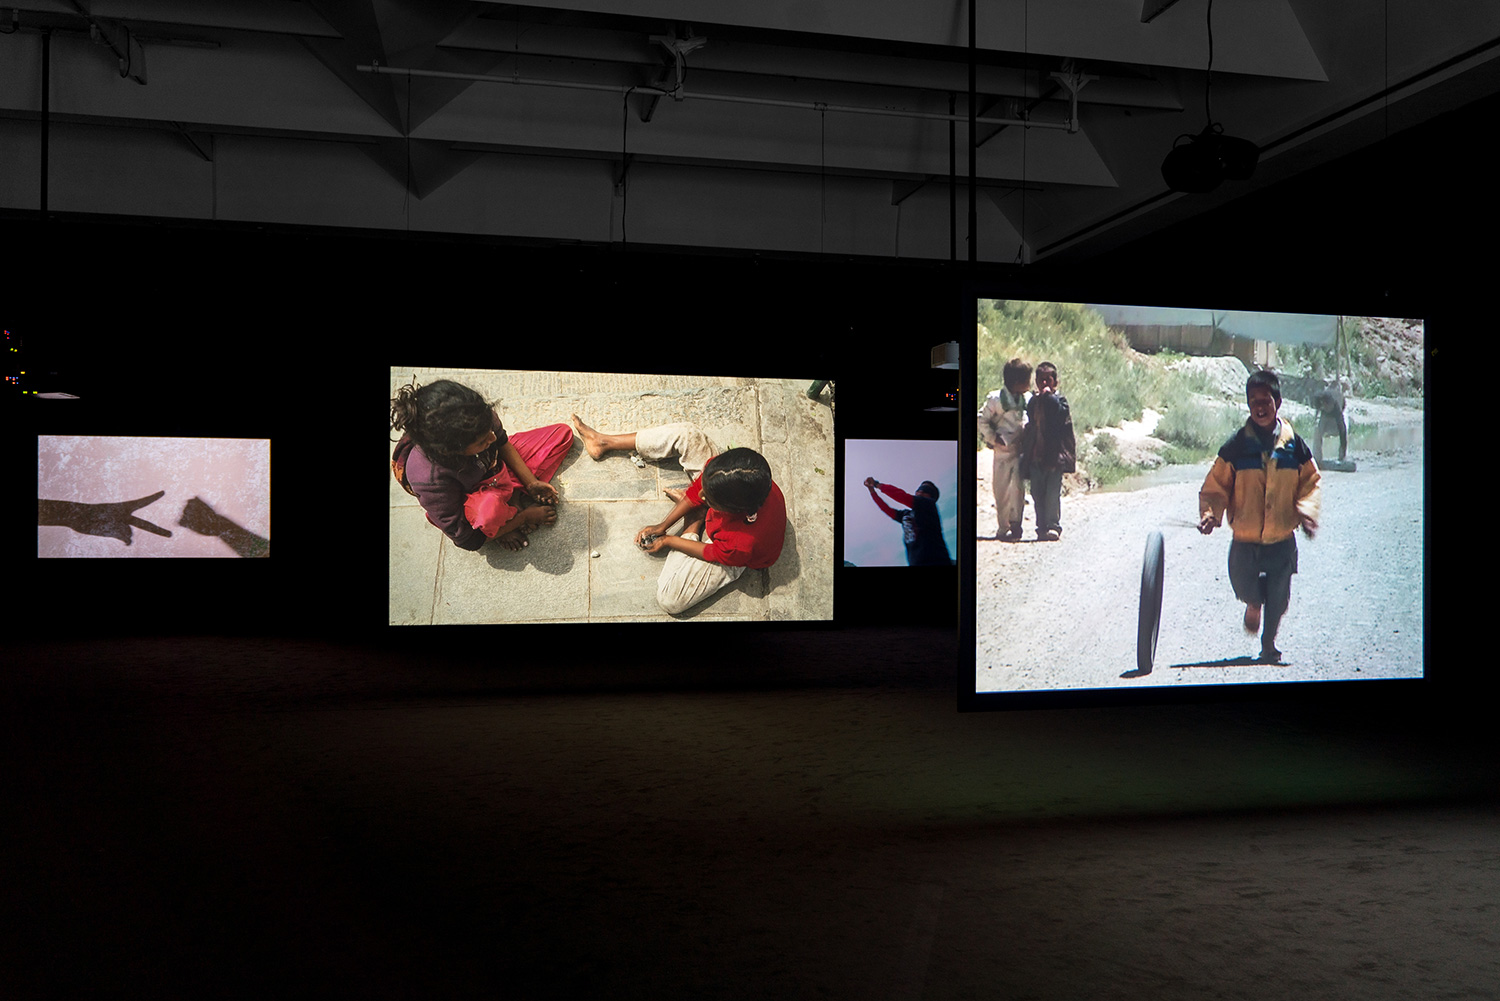 Exhibition view of the series Children's Games by Francis Alÿs